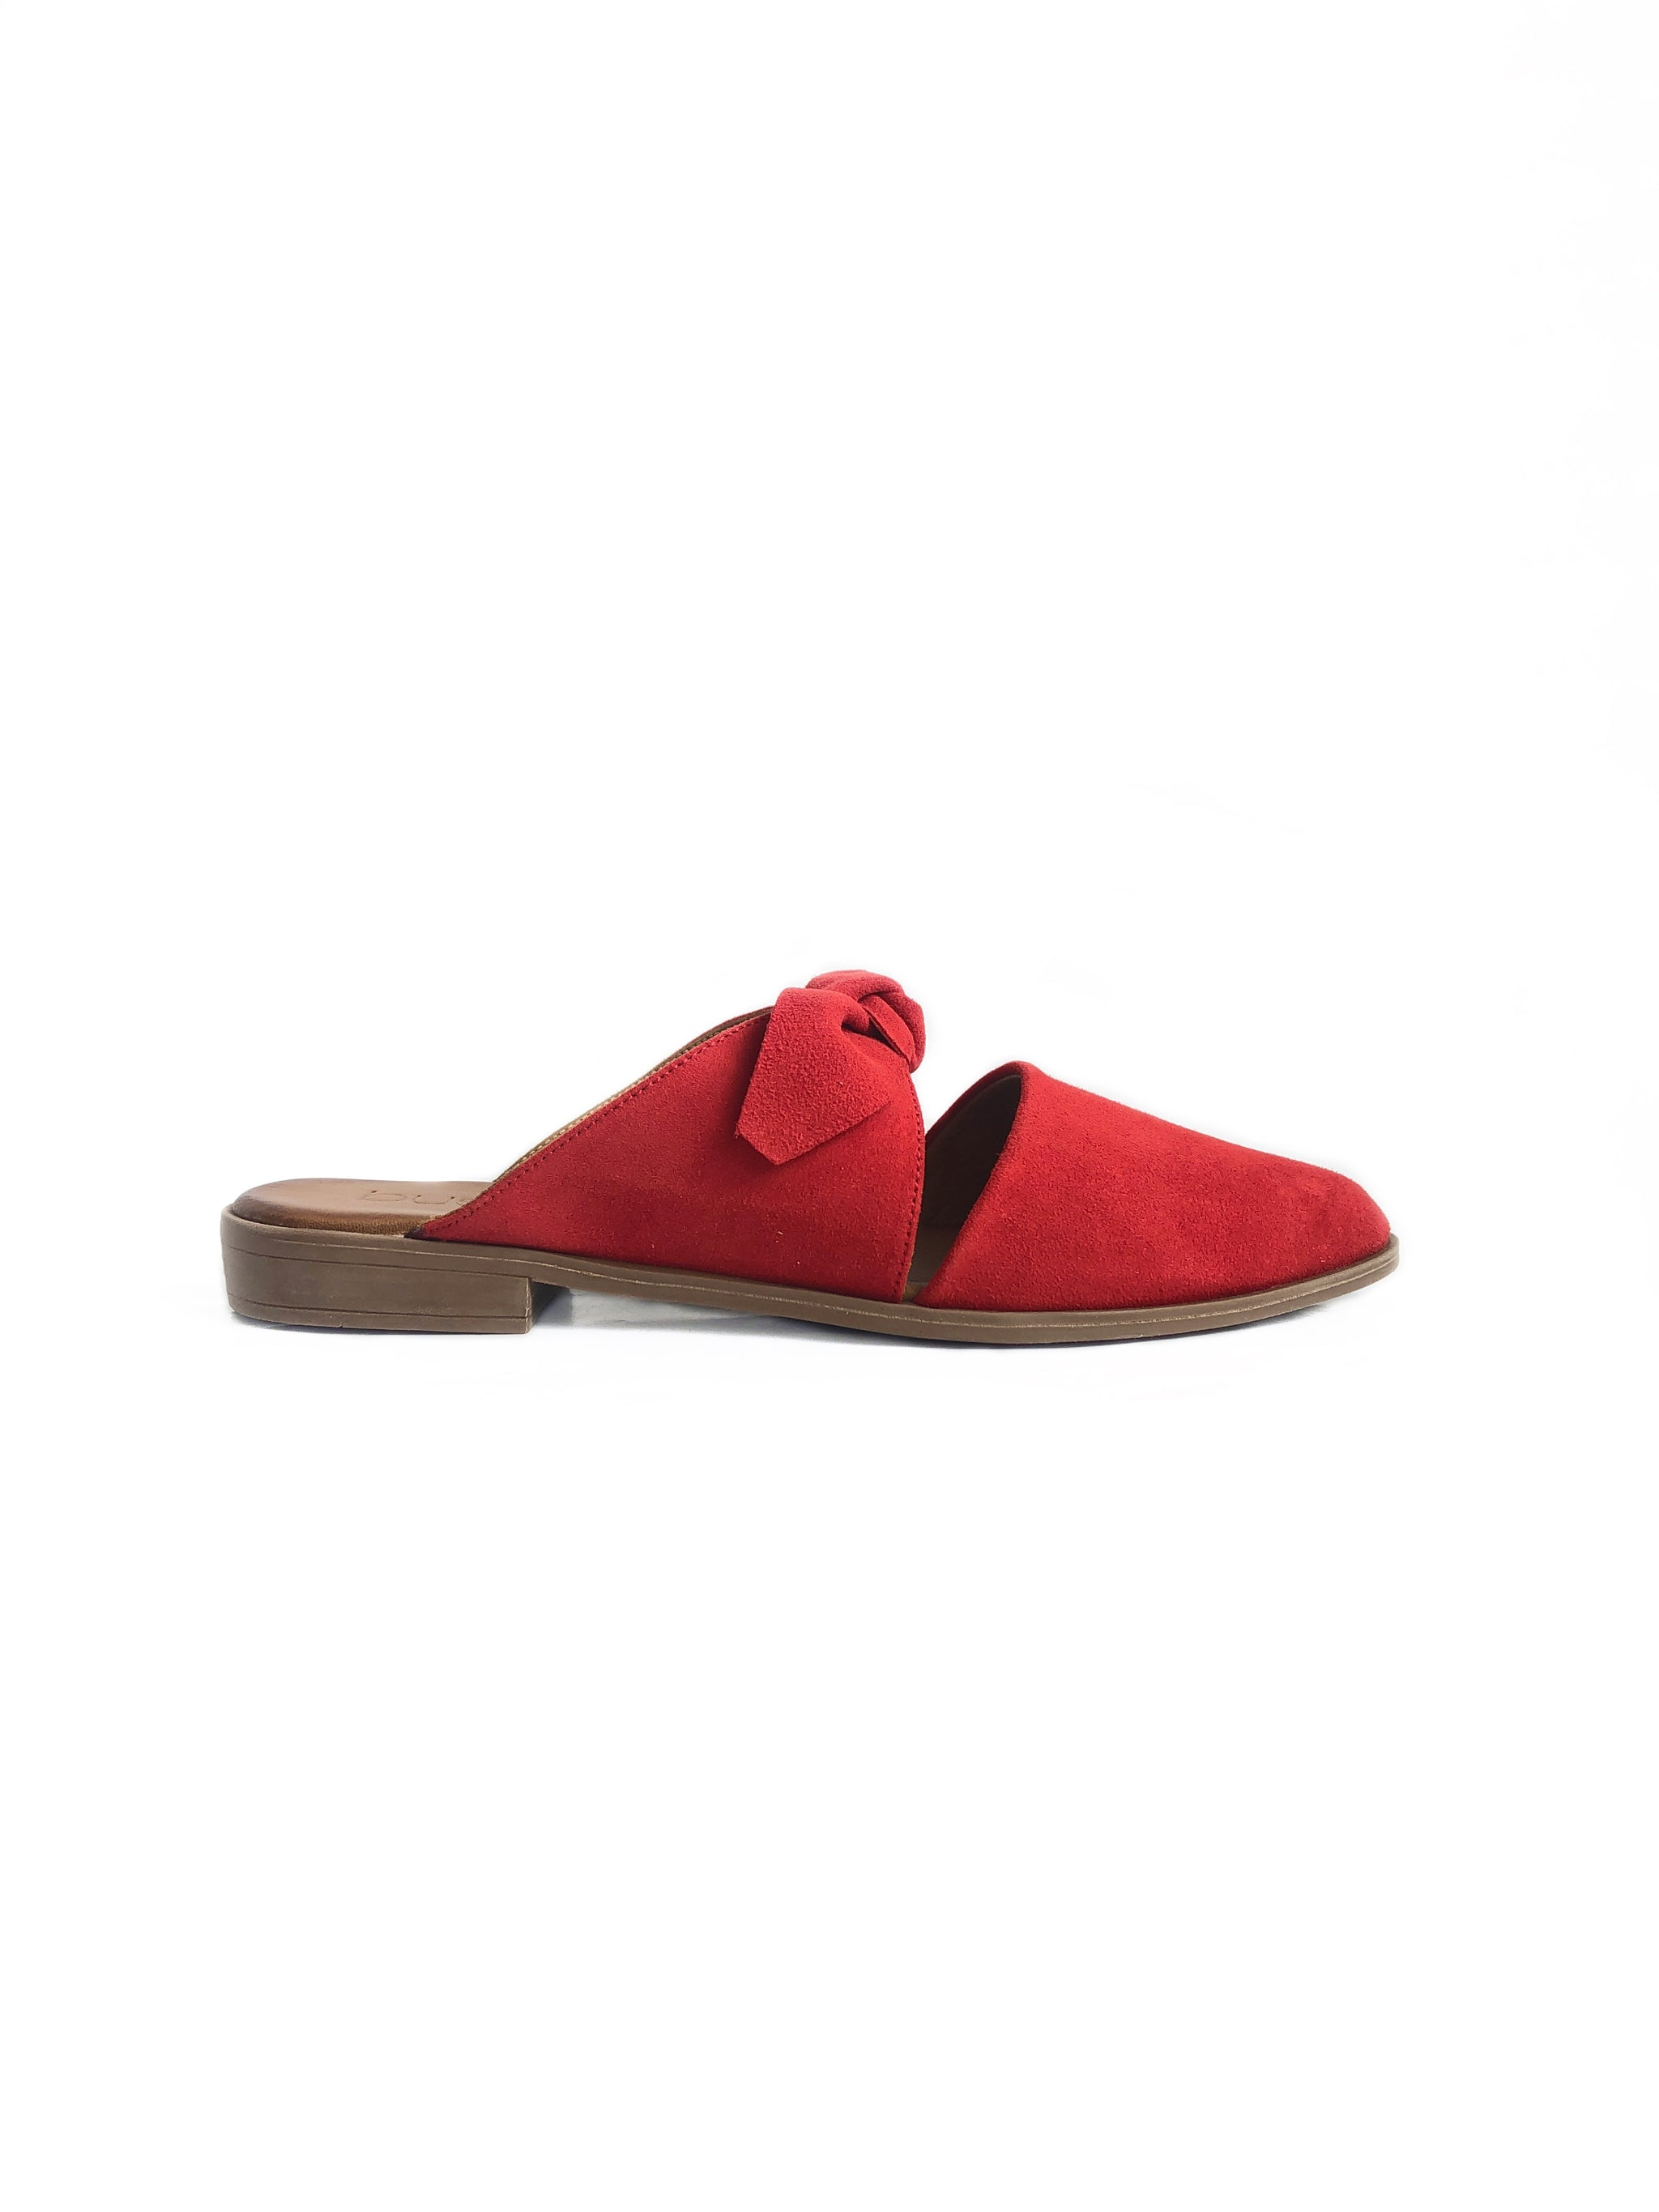 BUENO - BOWERY IN RED SUEDE